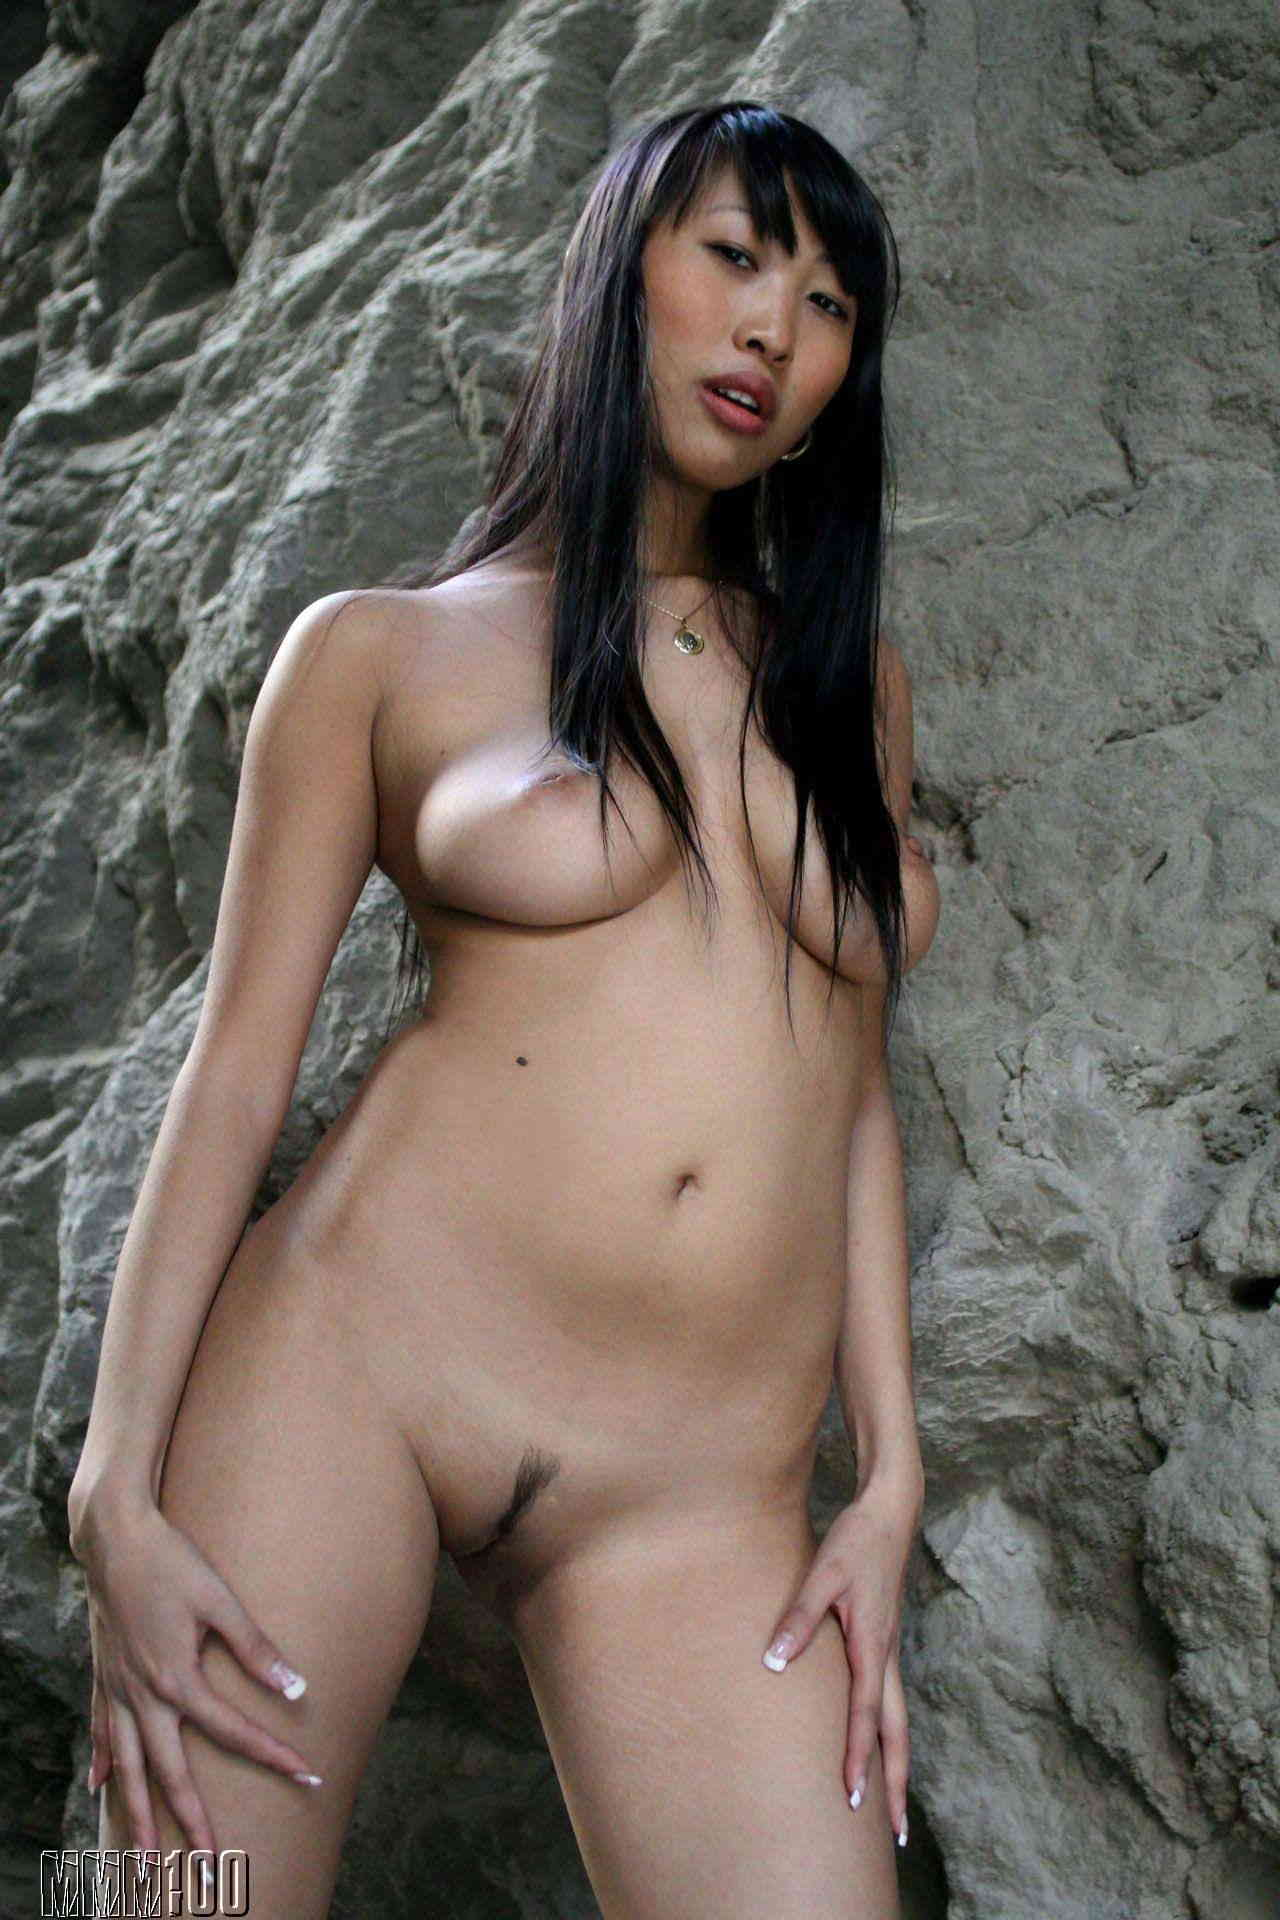 Sharon lee naked